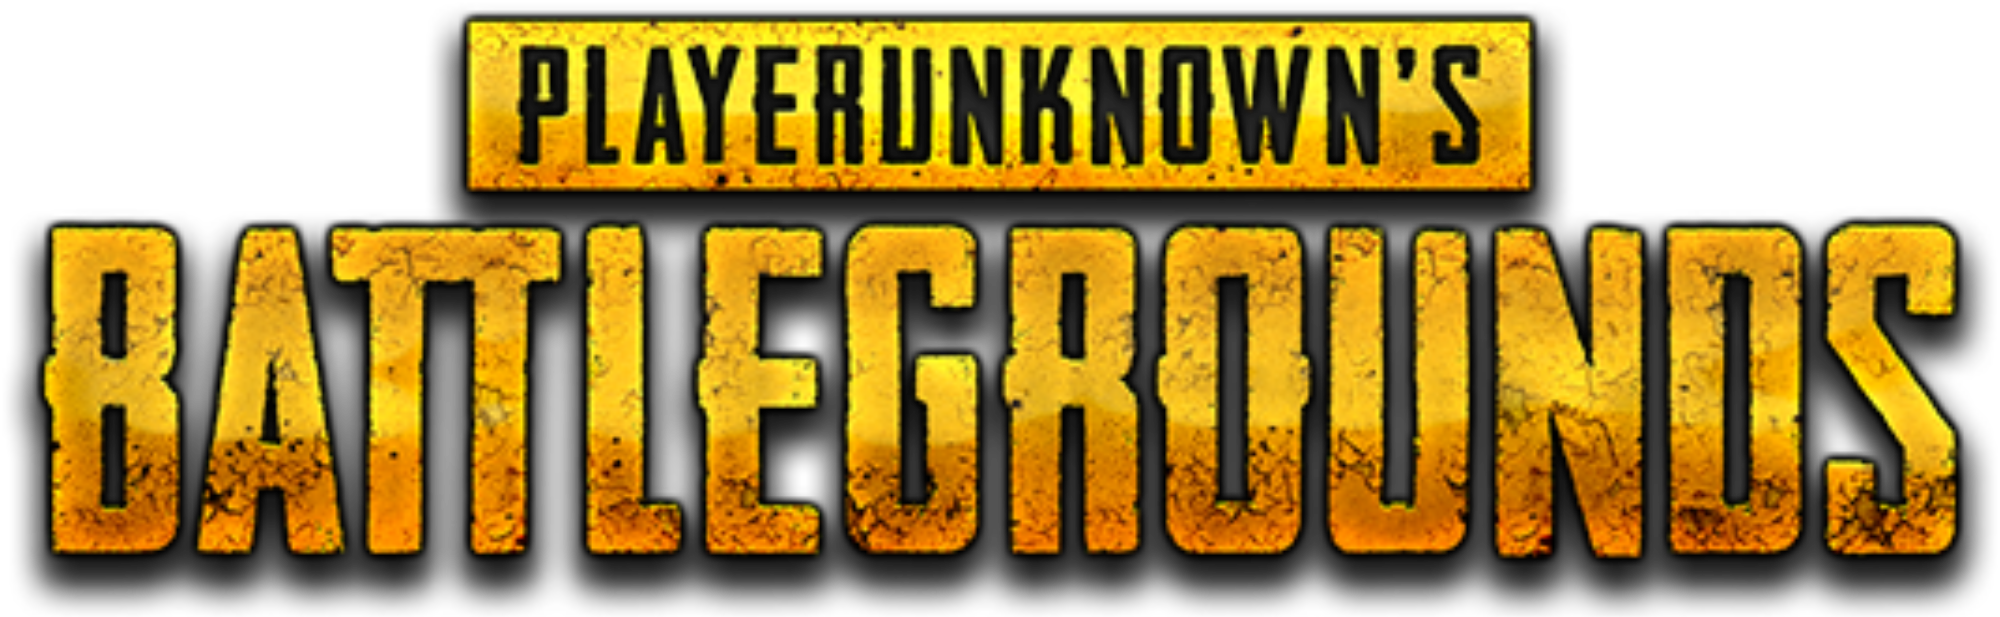 Get Pubg Pictures LOGO HD image #48239